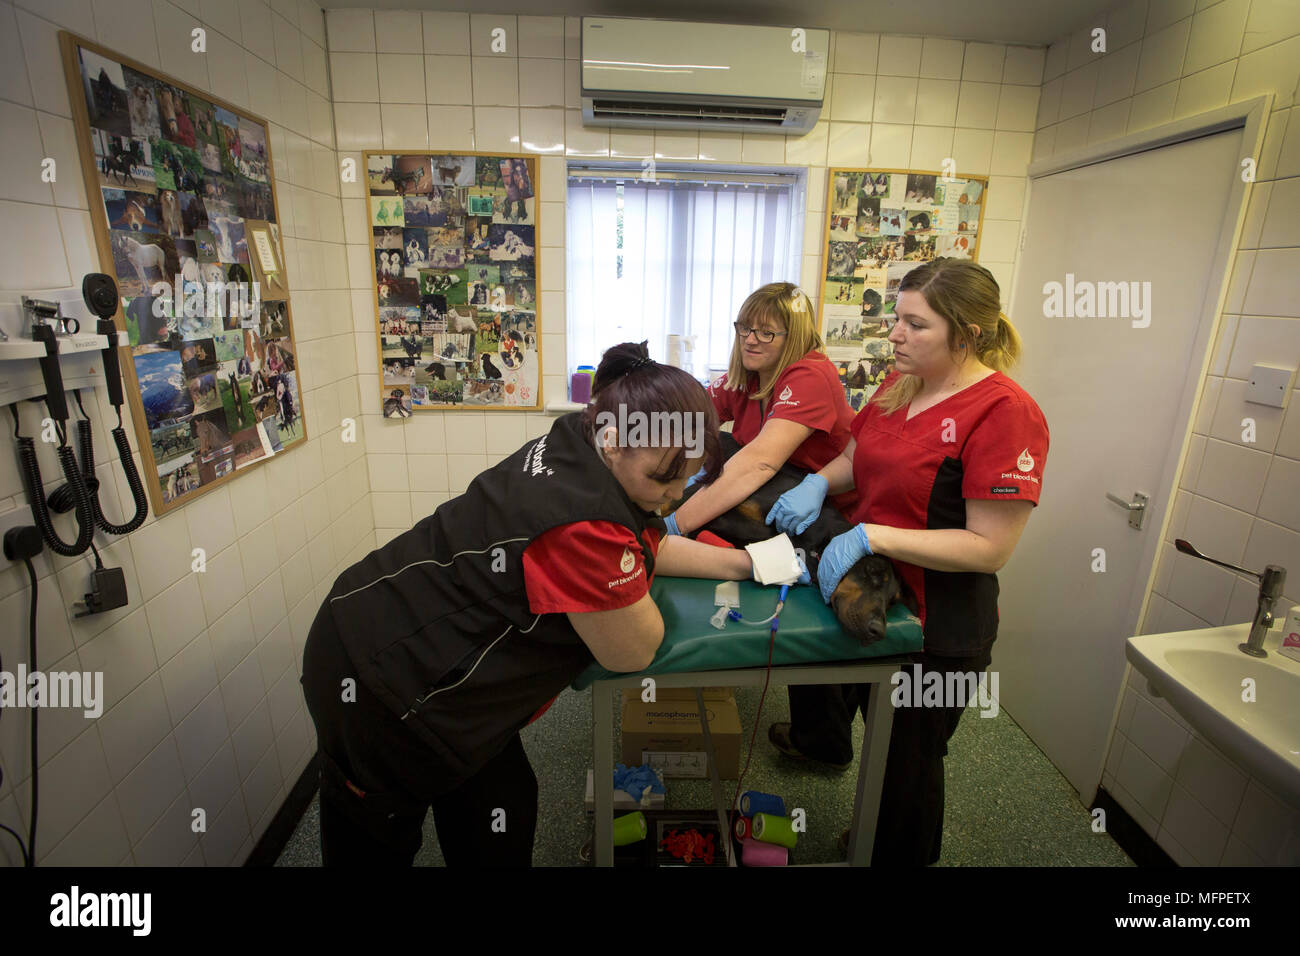 Staff from Pet Blood Bank, taking blood from Roxy the Doberman, at a blood donation session for dogs held at a veterinary hospital in Penkridge, Staffordshire. - Stock Image